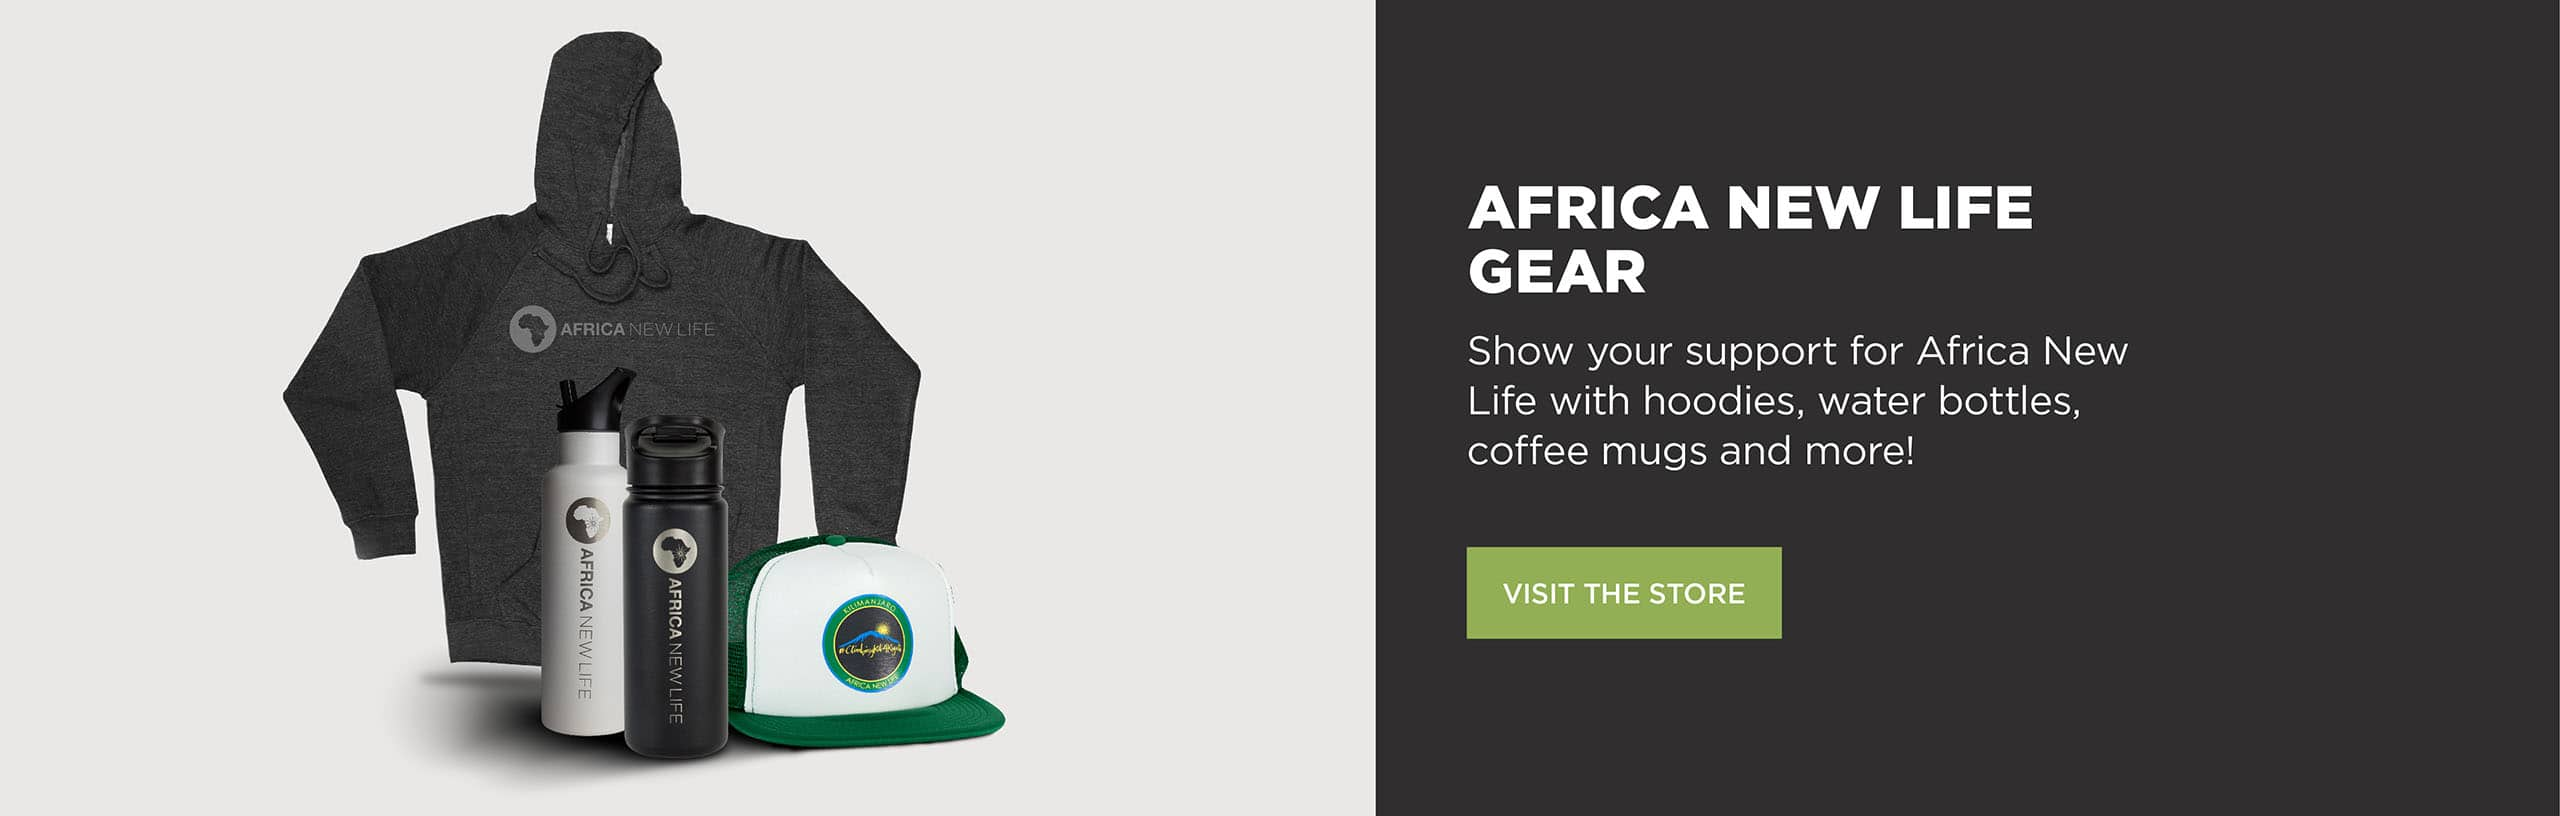 Africa New Life Gear - Wear your support